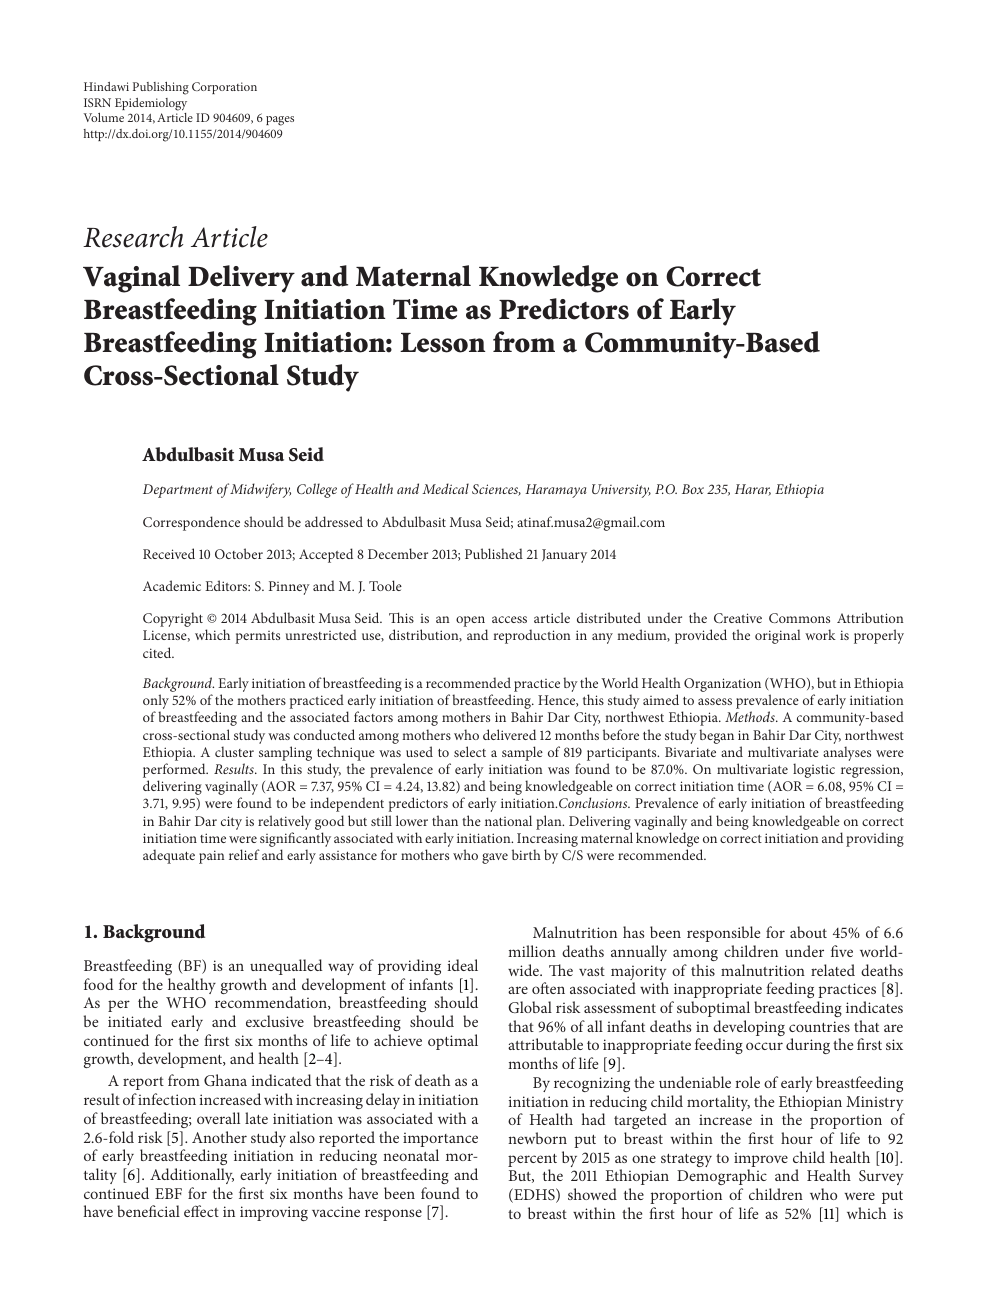 Vaginal Delivery and Maternal Knowledge on Correct Breastfeeding